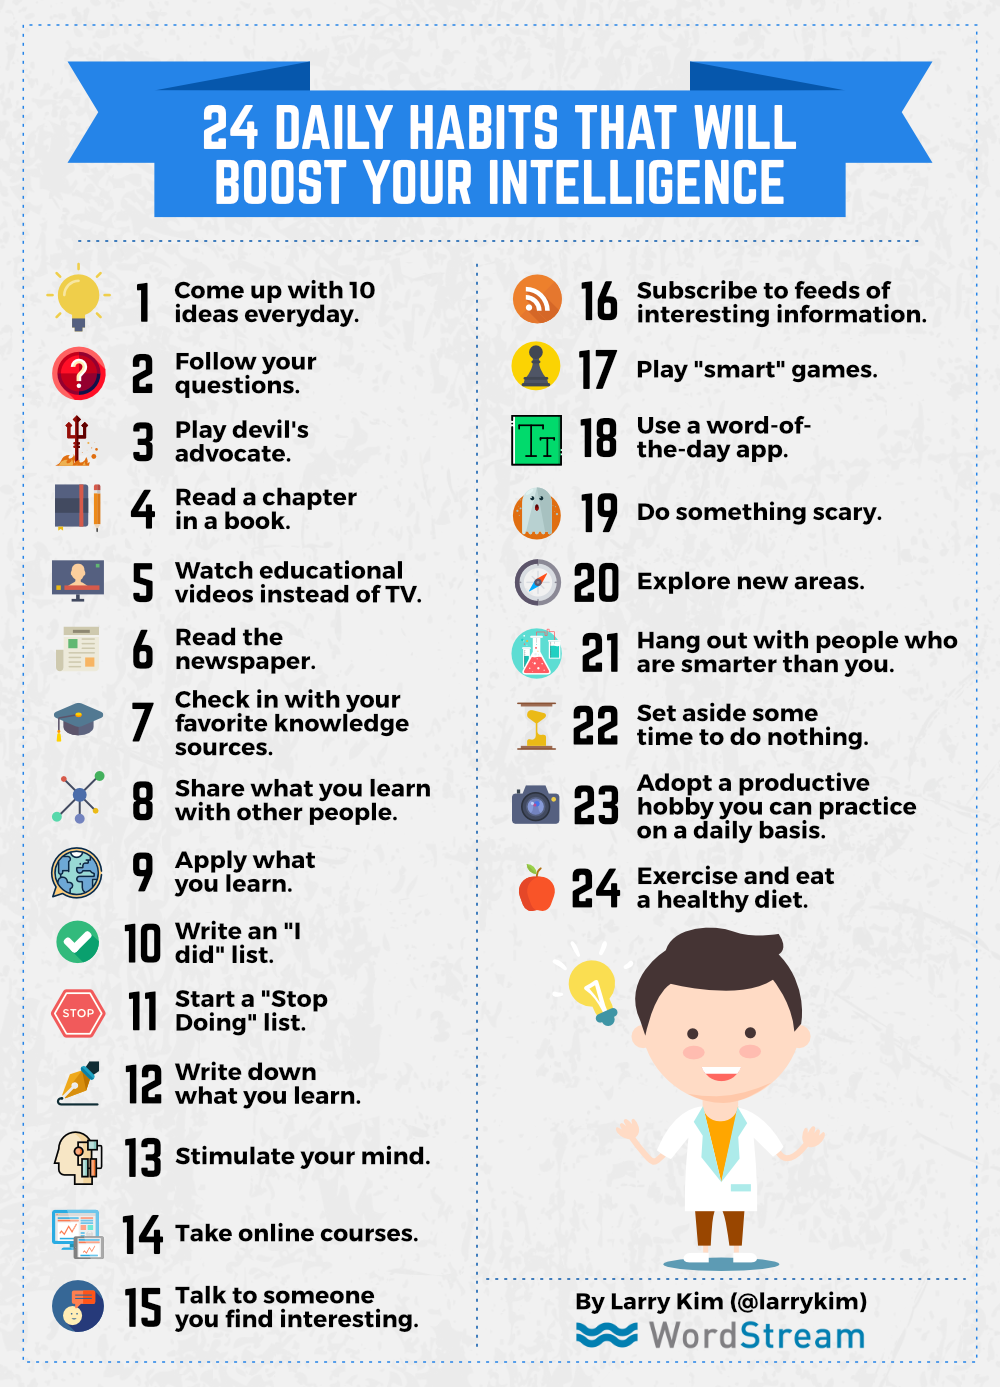 24 Daily Habits That Will Boost Your Intelligence